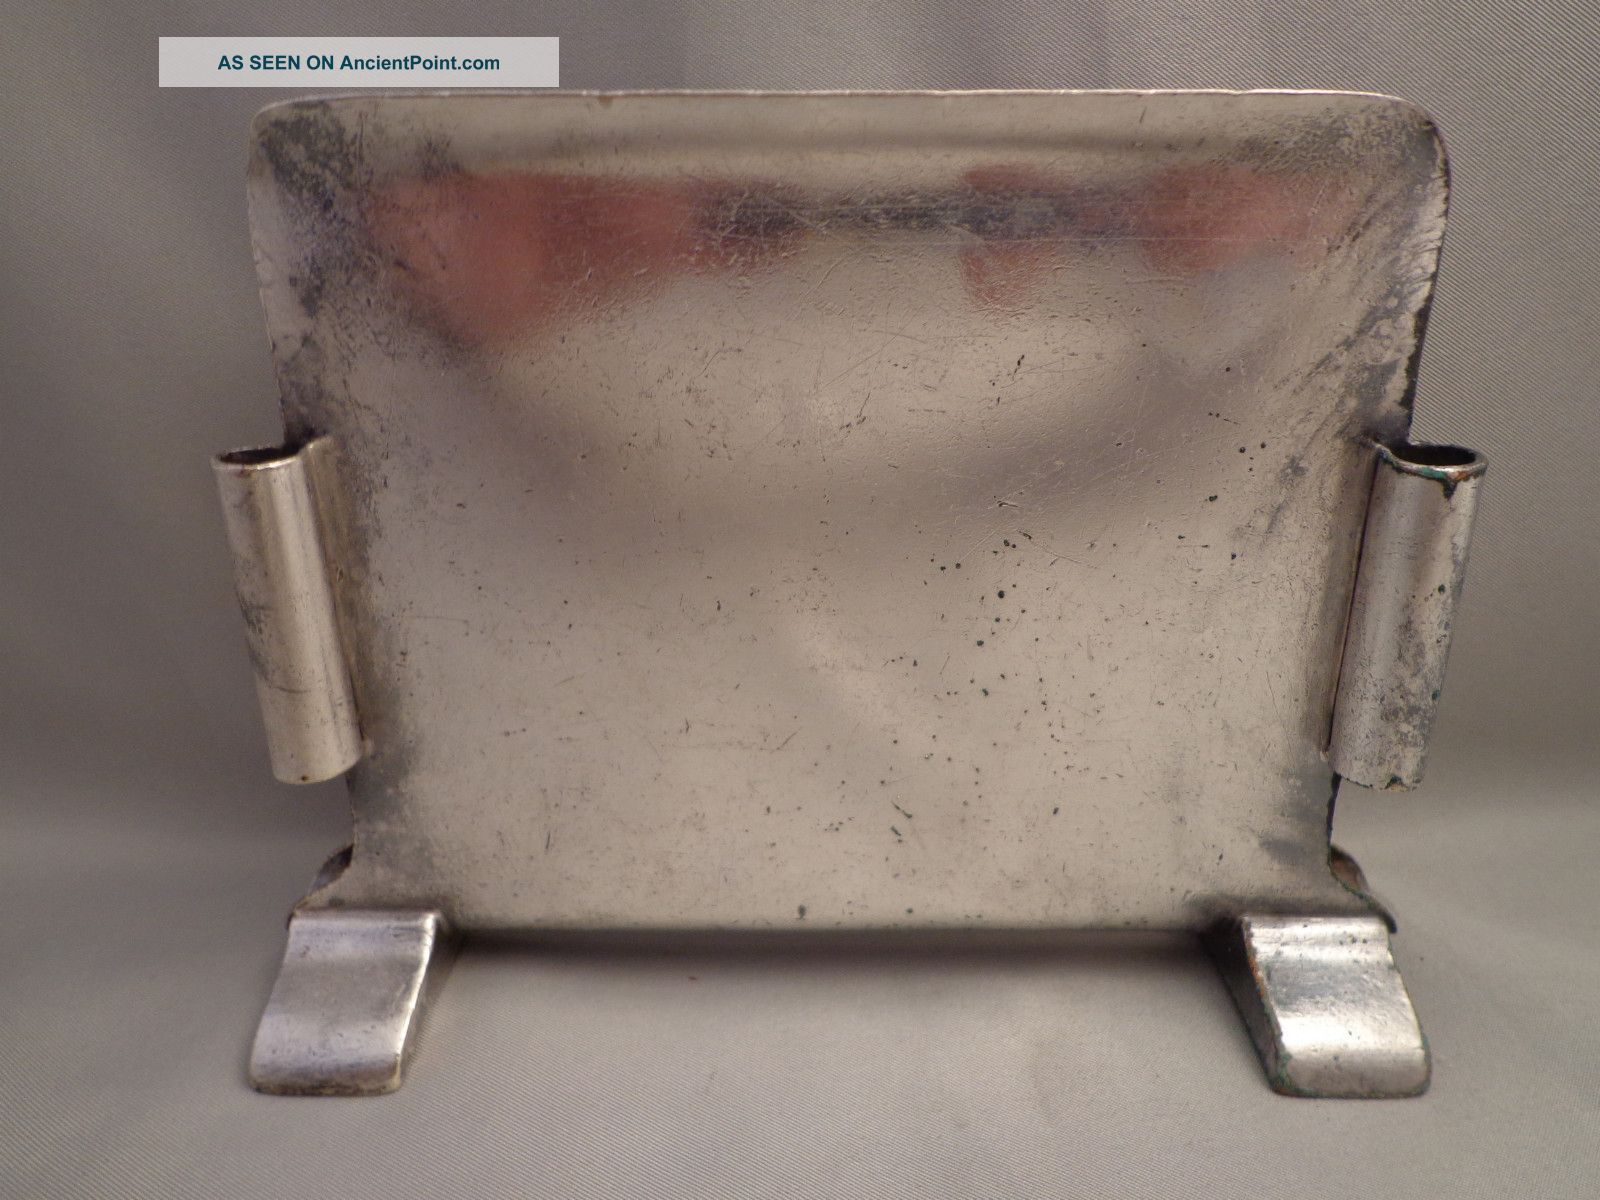 Illinois Central Icrr Ic System Railroad Dining Car Menu Holder Int Silver Rr Other photo